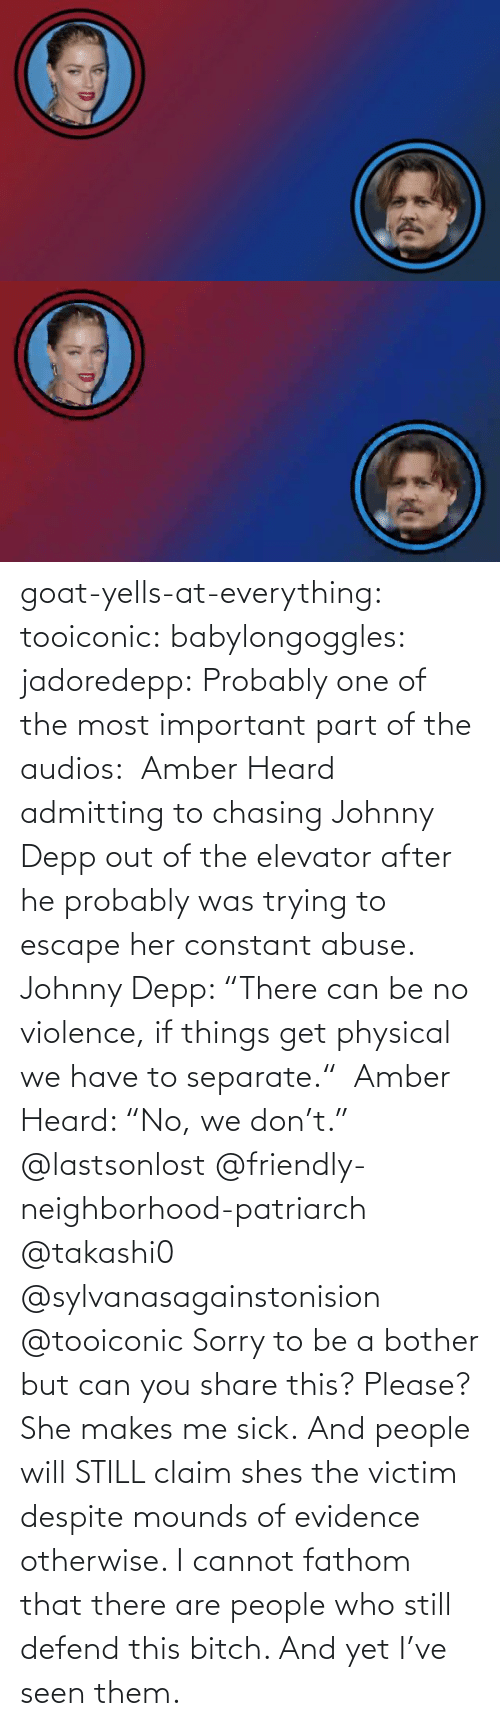 "otherwise: goat-yells-at-everything:  tooiconic:  babylongoggles:  jadoredepp:  Probably one of the most important part of the audios:  Amber Heard admitting to chasing Johnny Depp out of the elevator after he probably was trying to escape her constant abuse.  Johnny Depp: ""There can be no violence, if things get physical we have to separate.""  Amber Heard: ""No, we don't.""  @lastsonlost @friendly-neighborhood-patriarch @takashi0 @sylvanasagainstonision @tooiconic Sorry to be a bother but can you share this? Please?   She makes me sick.   And people will STILL claim shes the victim despite mounds of evidence otherwise.    I cannot fathom that there are people who still defend this bitch. And yet I've seen them."